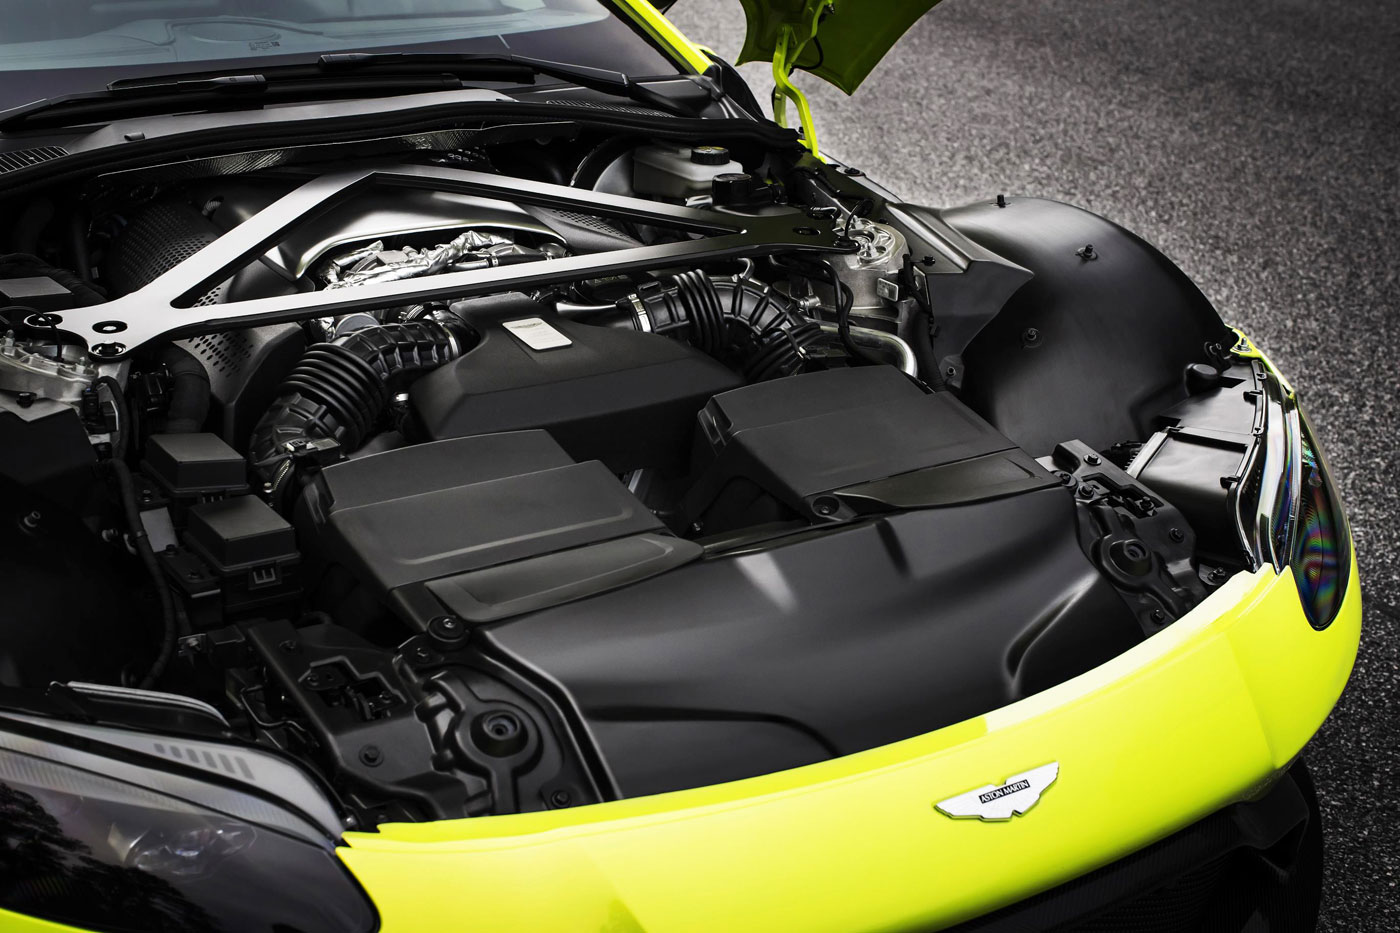 New Vantage: Bold New Look, Intensified Performance and Dynamics 11